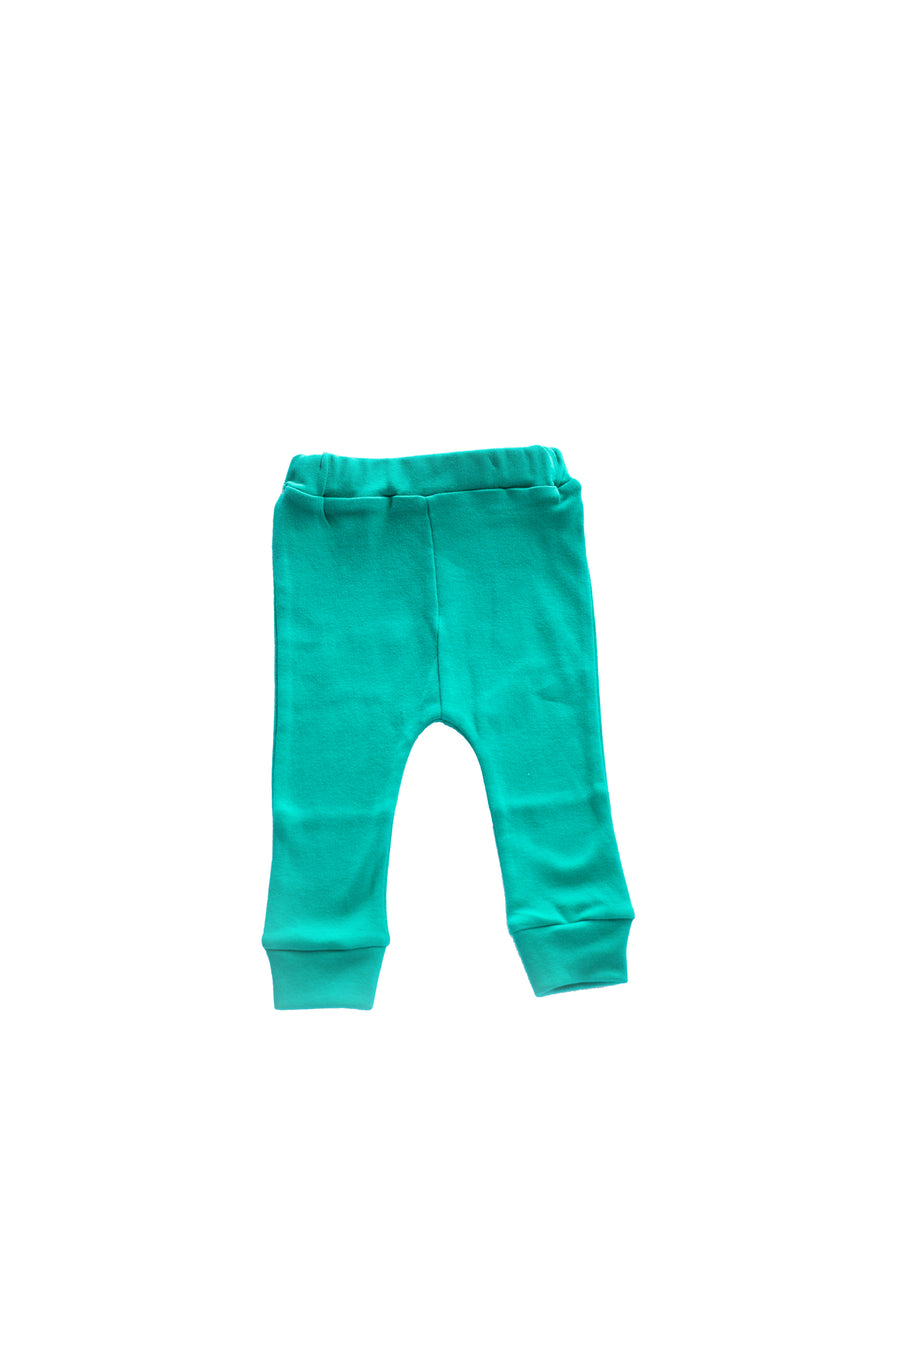 Basic Pant -  SOLID COLORS